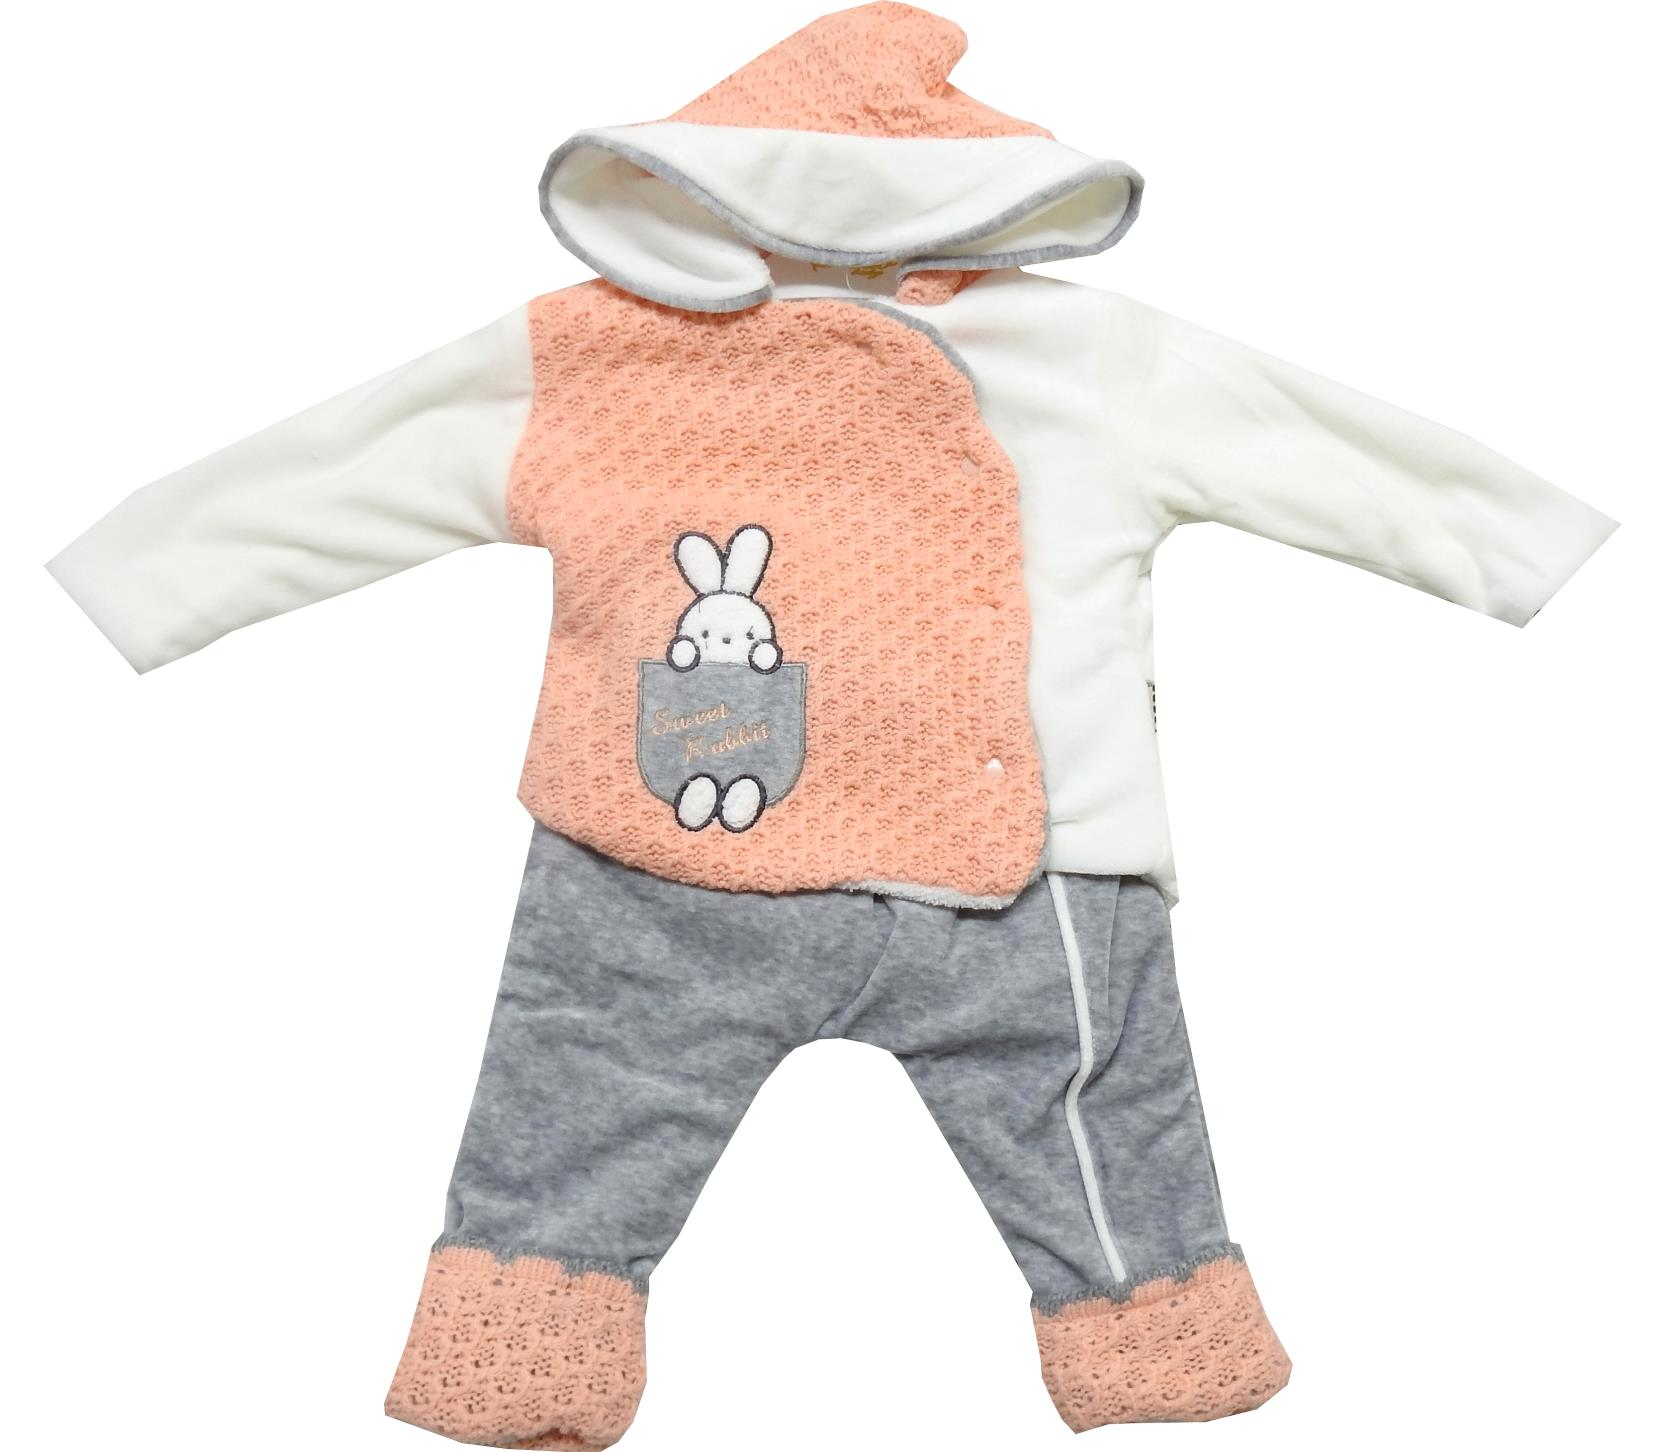 Wholeale sweet rubbish print knitted hoodie romper for baby girl (6-9-12 month)